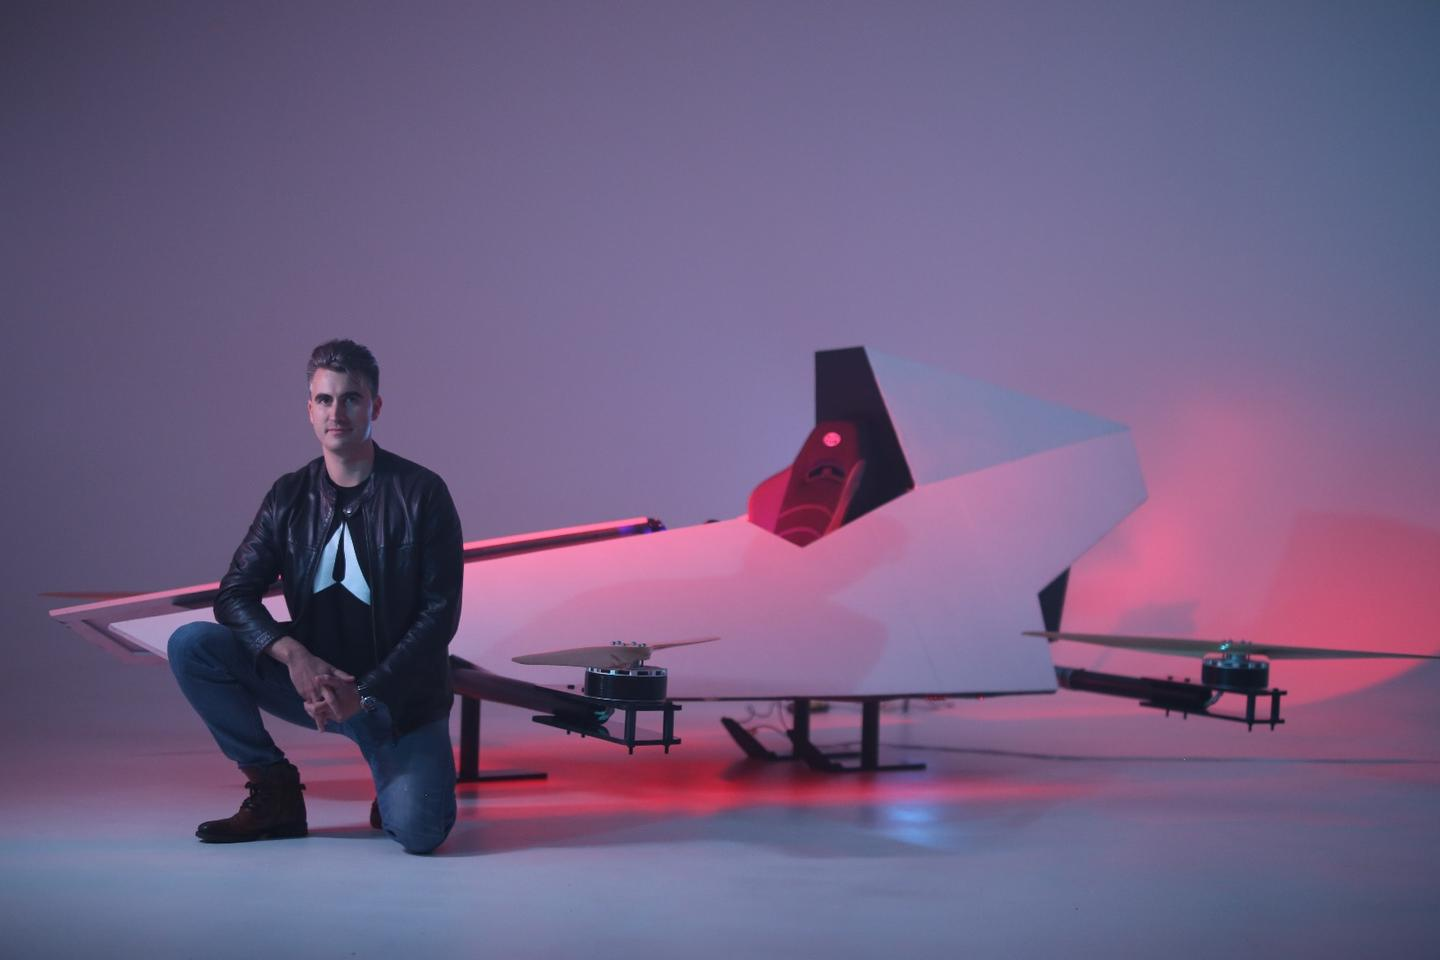 Matt Pearson with a mockup of the Mirage Airspeeder (NOT the Mark 1 Airspeeder, which would be the first model to actually fly)